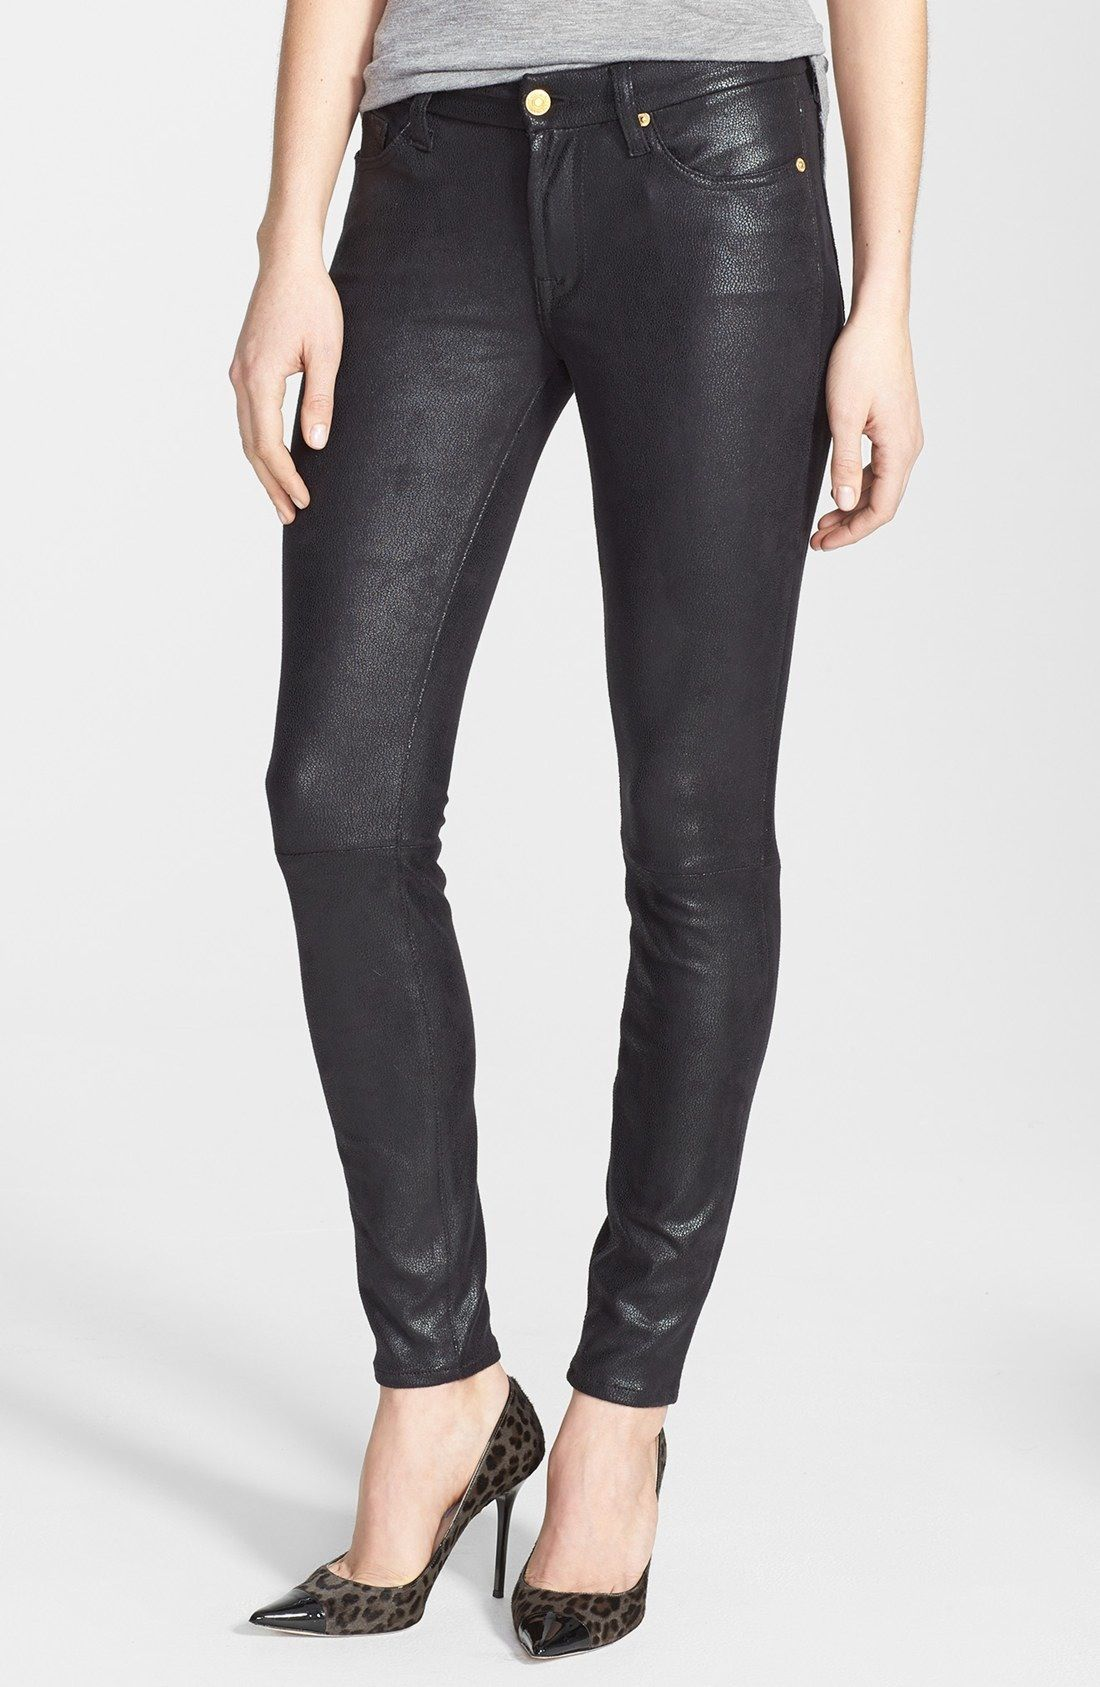 7 For All Mankind The Skinny High Rise Faux Leather Skinny